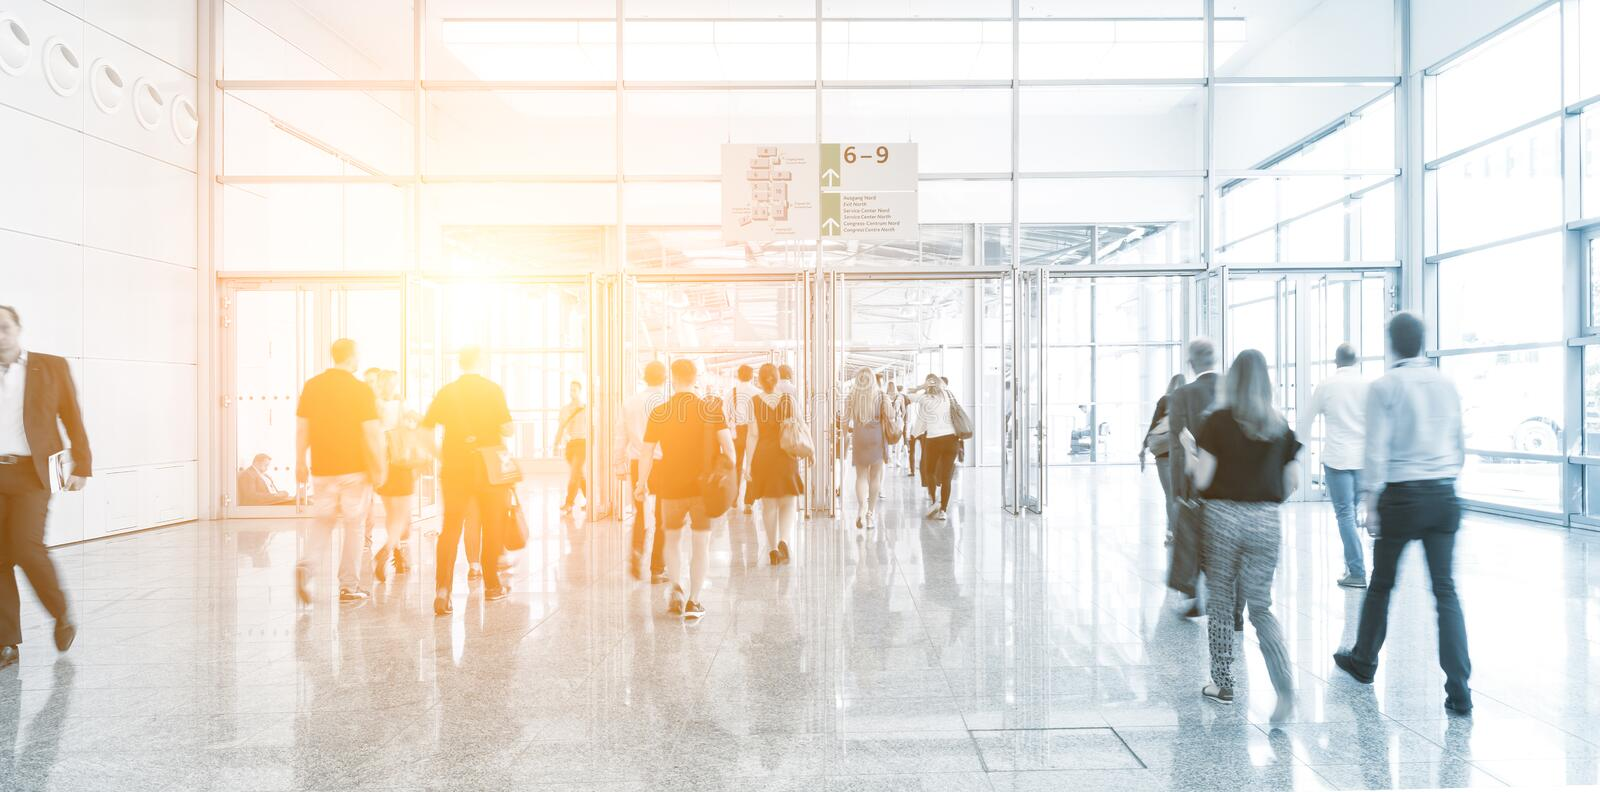 Blurred business people at a trade show floor. Crowd of people rushing in a entrance of a trade show. ideal for websites and magazines layouts royalty free stock images